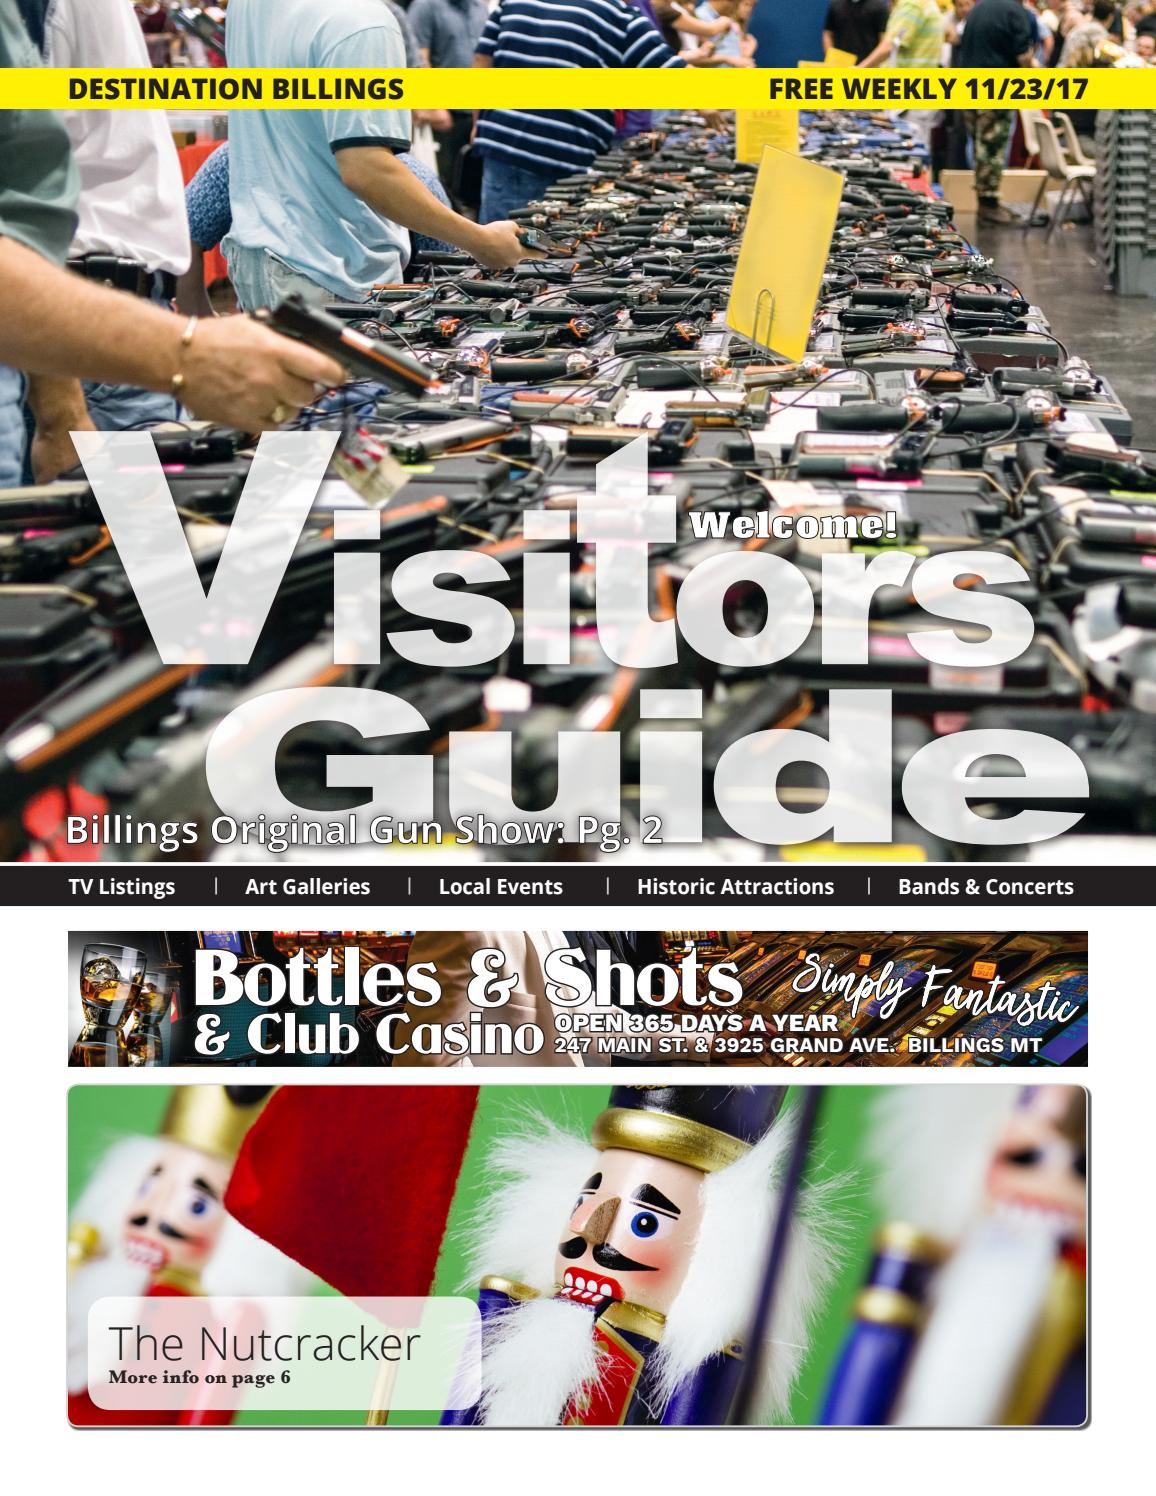 46e23d9c2b938a Welcome! Visitors Guide 17-11-23 by Welcome! Visitors Guide - issuu